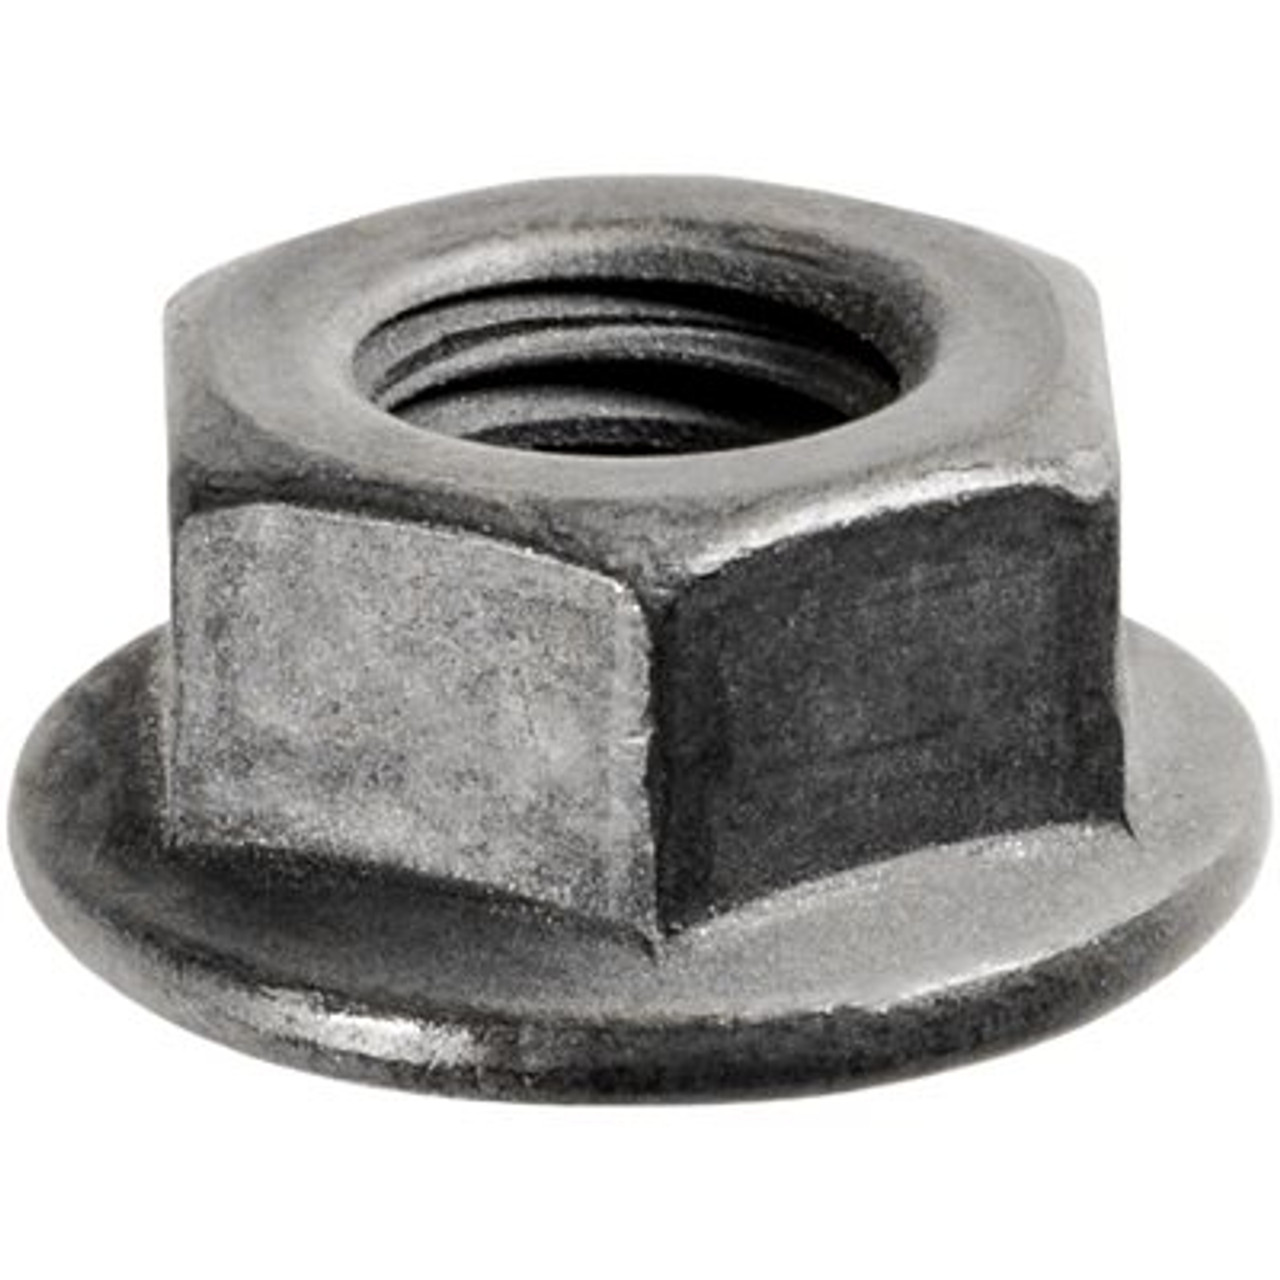 Screw Size : M8-1.25 Across Flats : 13MM Flange Diameter : 17MM Overall Height : 8MM Finish : Phosphate OEM: 11501889 Pcs/Unit: 25 Per Box Catalog Page #: 140